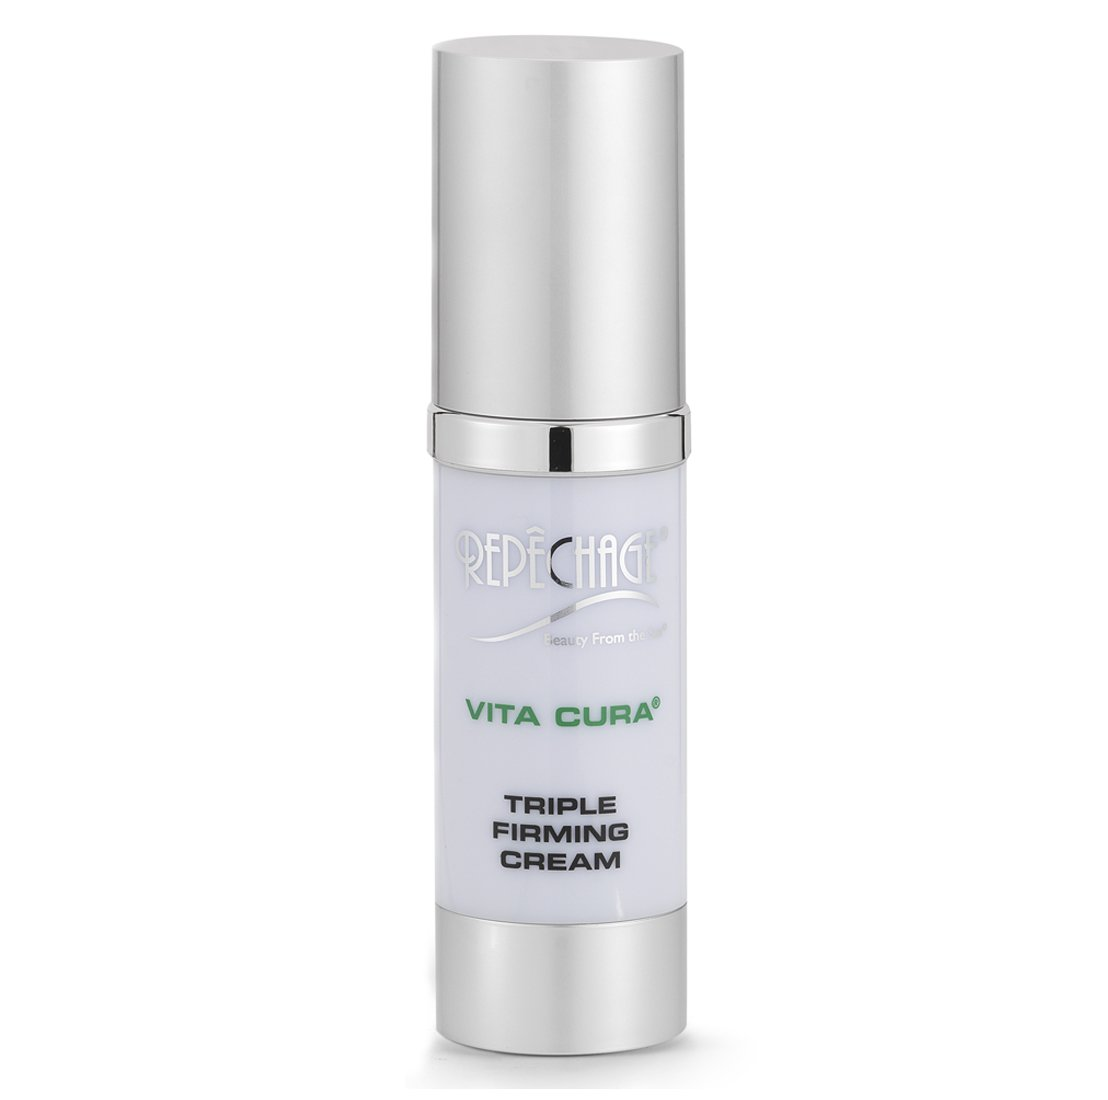 Repechage Vita Cura Triple Firming Cream. Anti Aging Face + Neck Moisturizer Cream. Clinically Proven to Help Improve the Appearance of Skin Firmness, Lines & Wrinkles 1fl oz/30ml